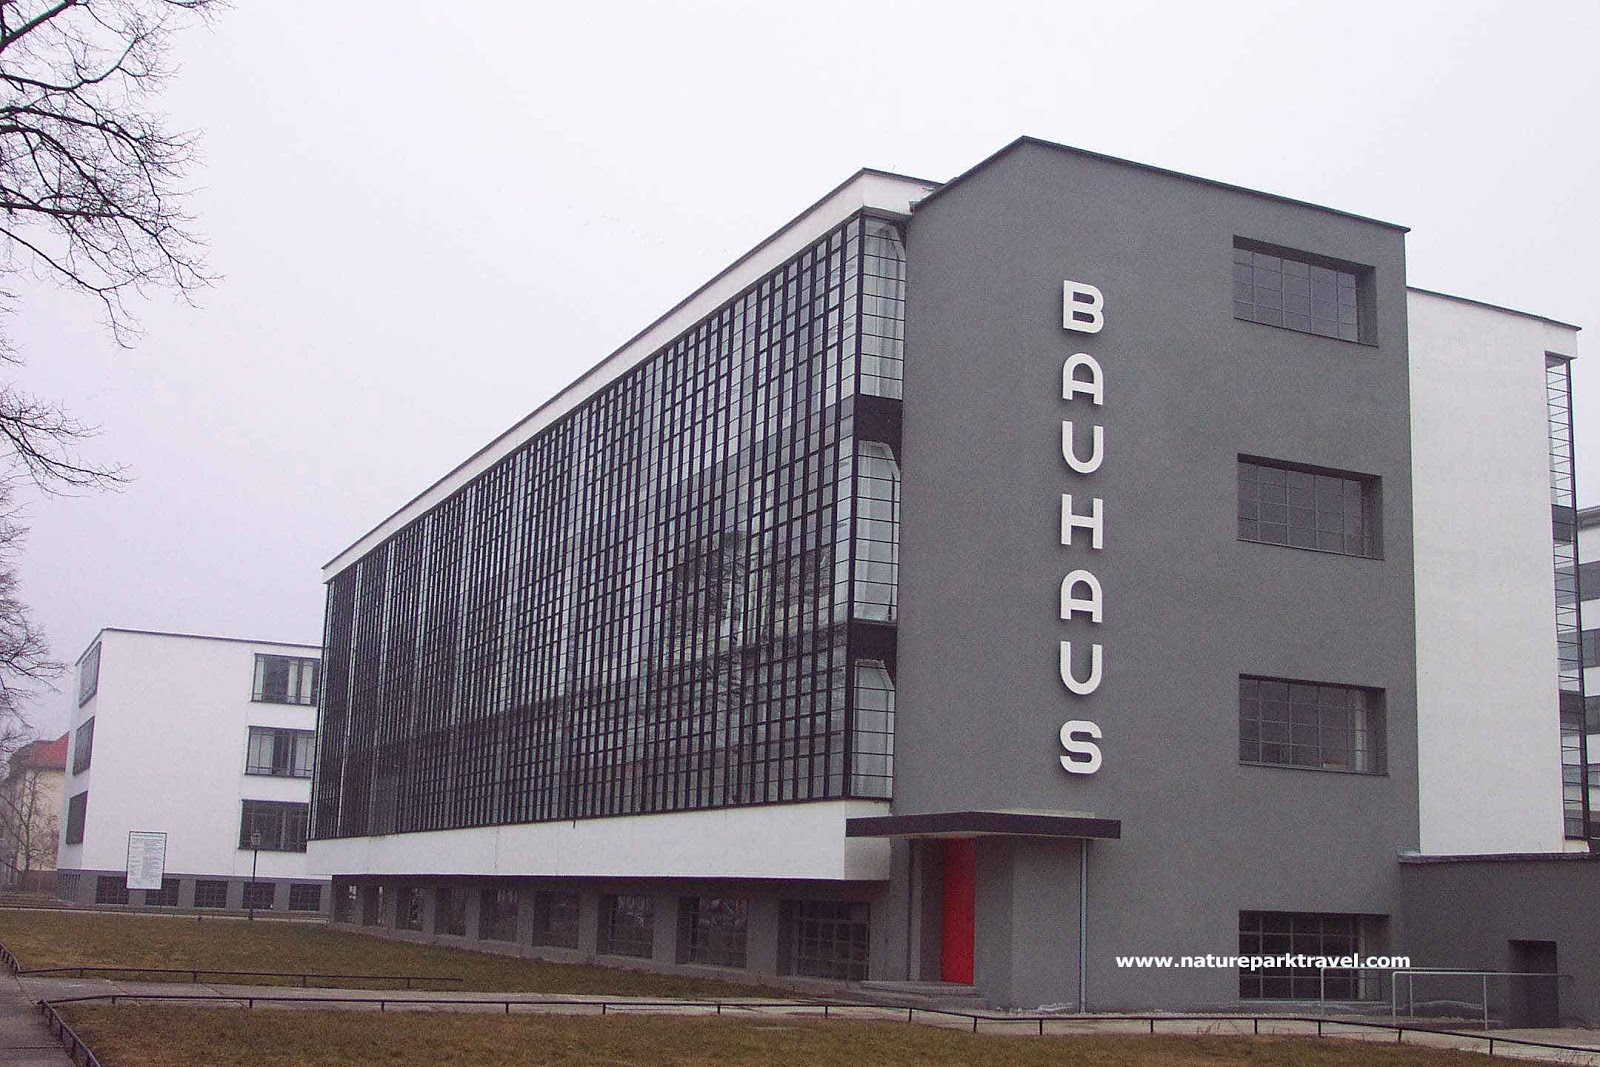 development of modern art fa2012 bauhaus aesthetics for mass production. Black Bedroom Furniture Sets. Home Design Ideas